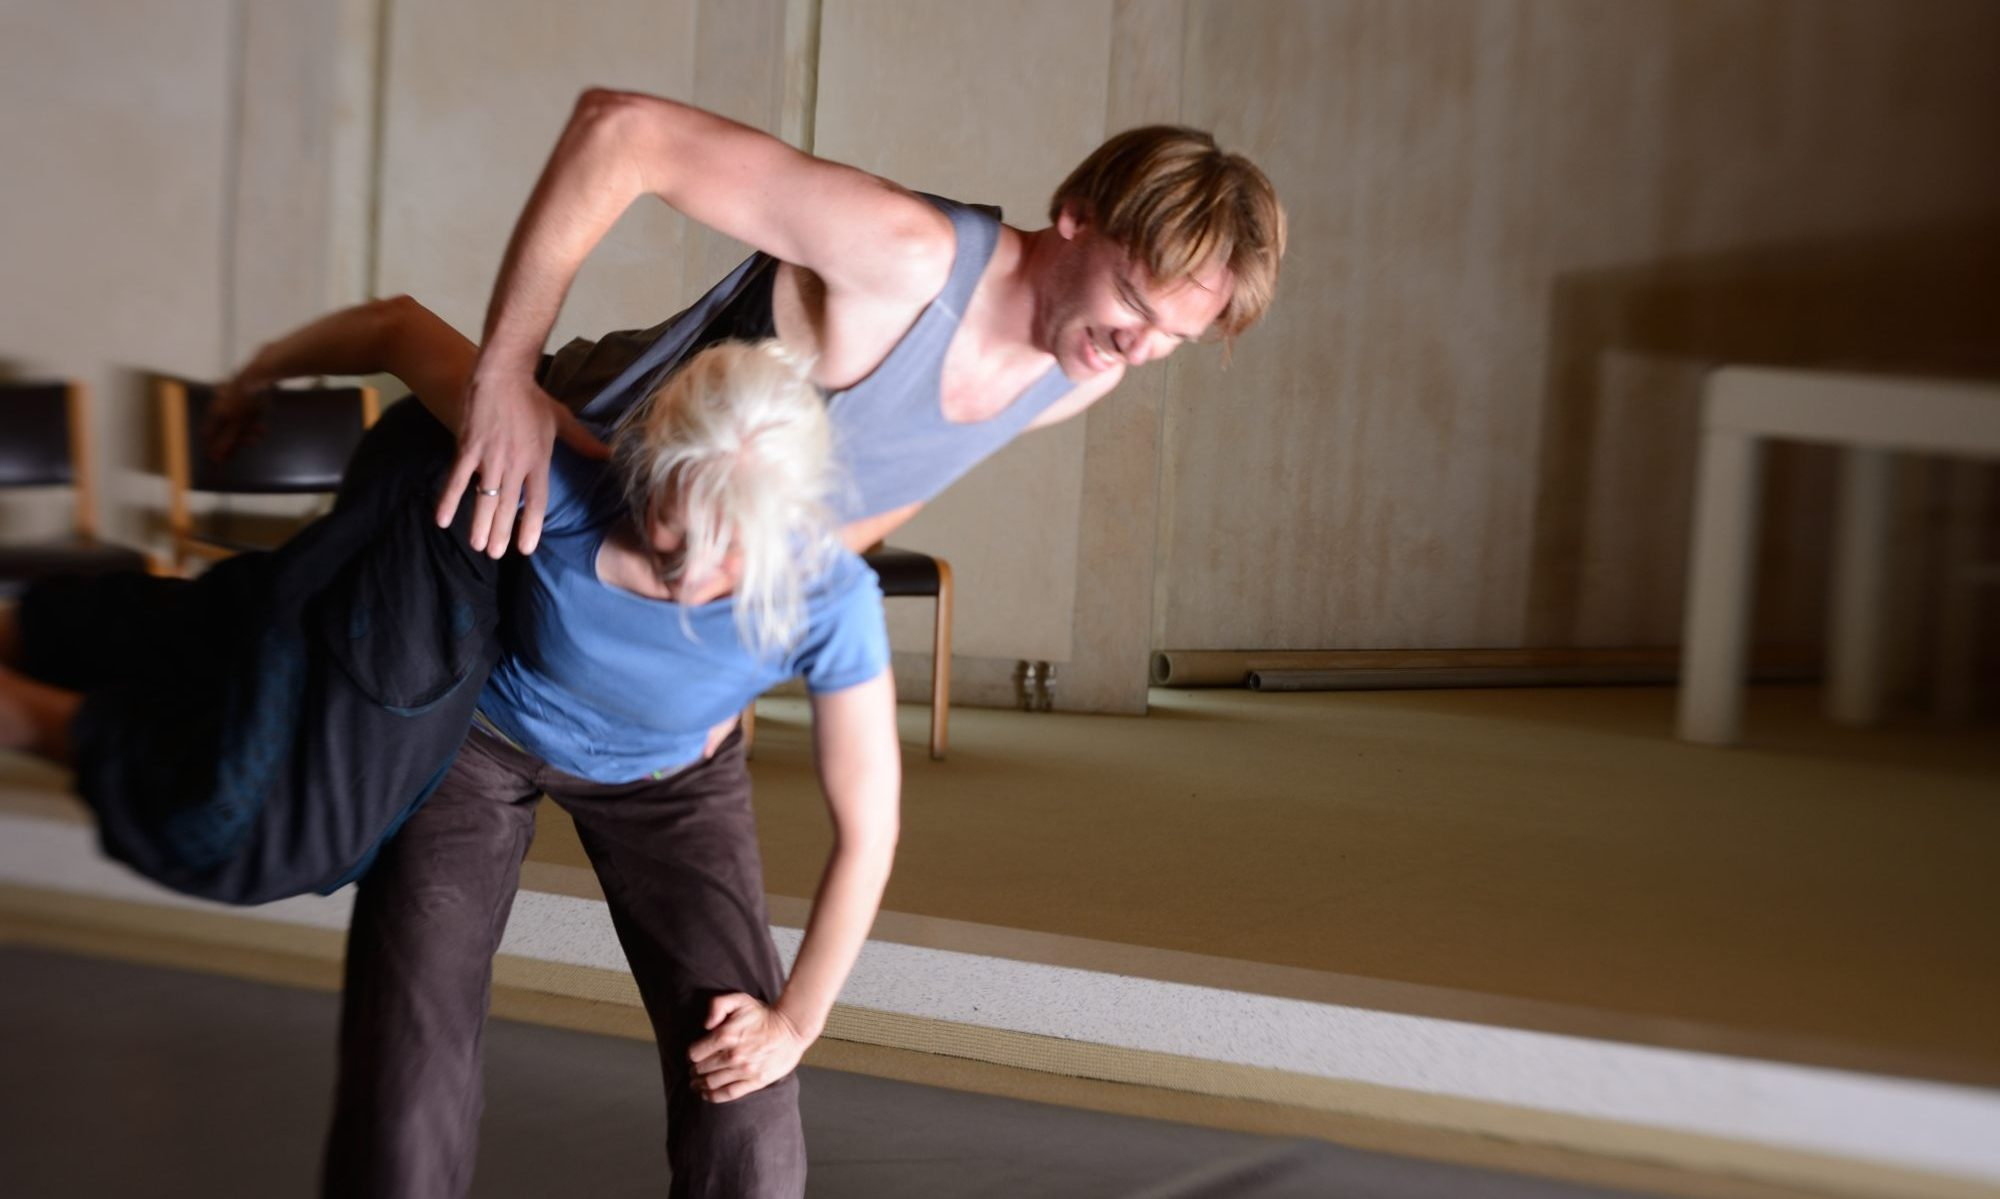 Contact Improvisation Bielefeld